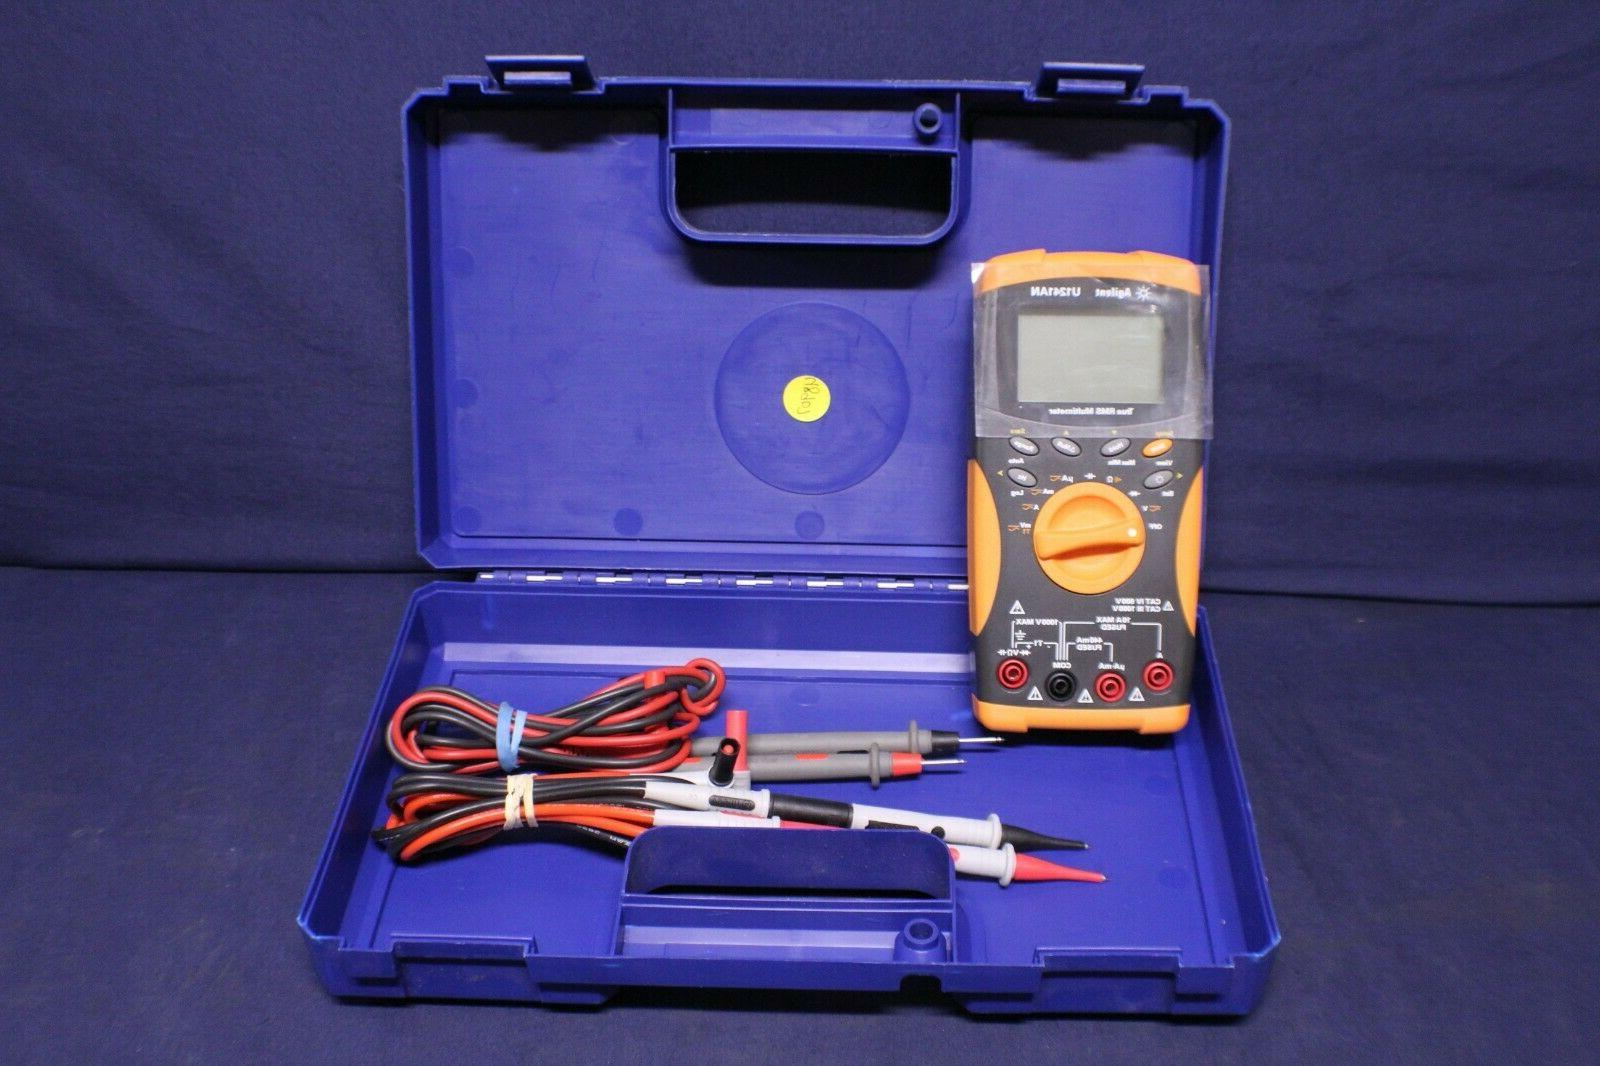 u1241an true rms multimeter with leads c1